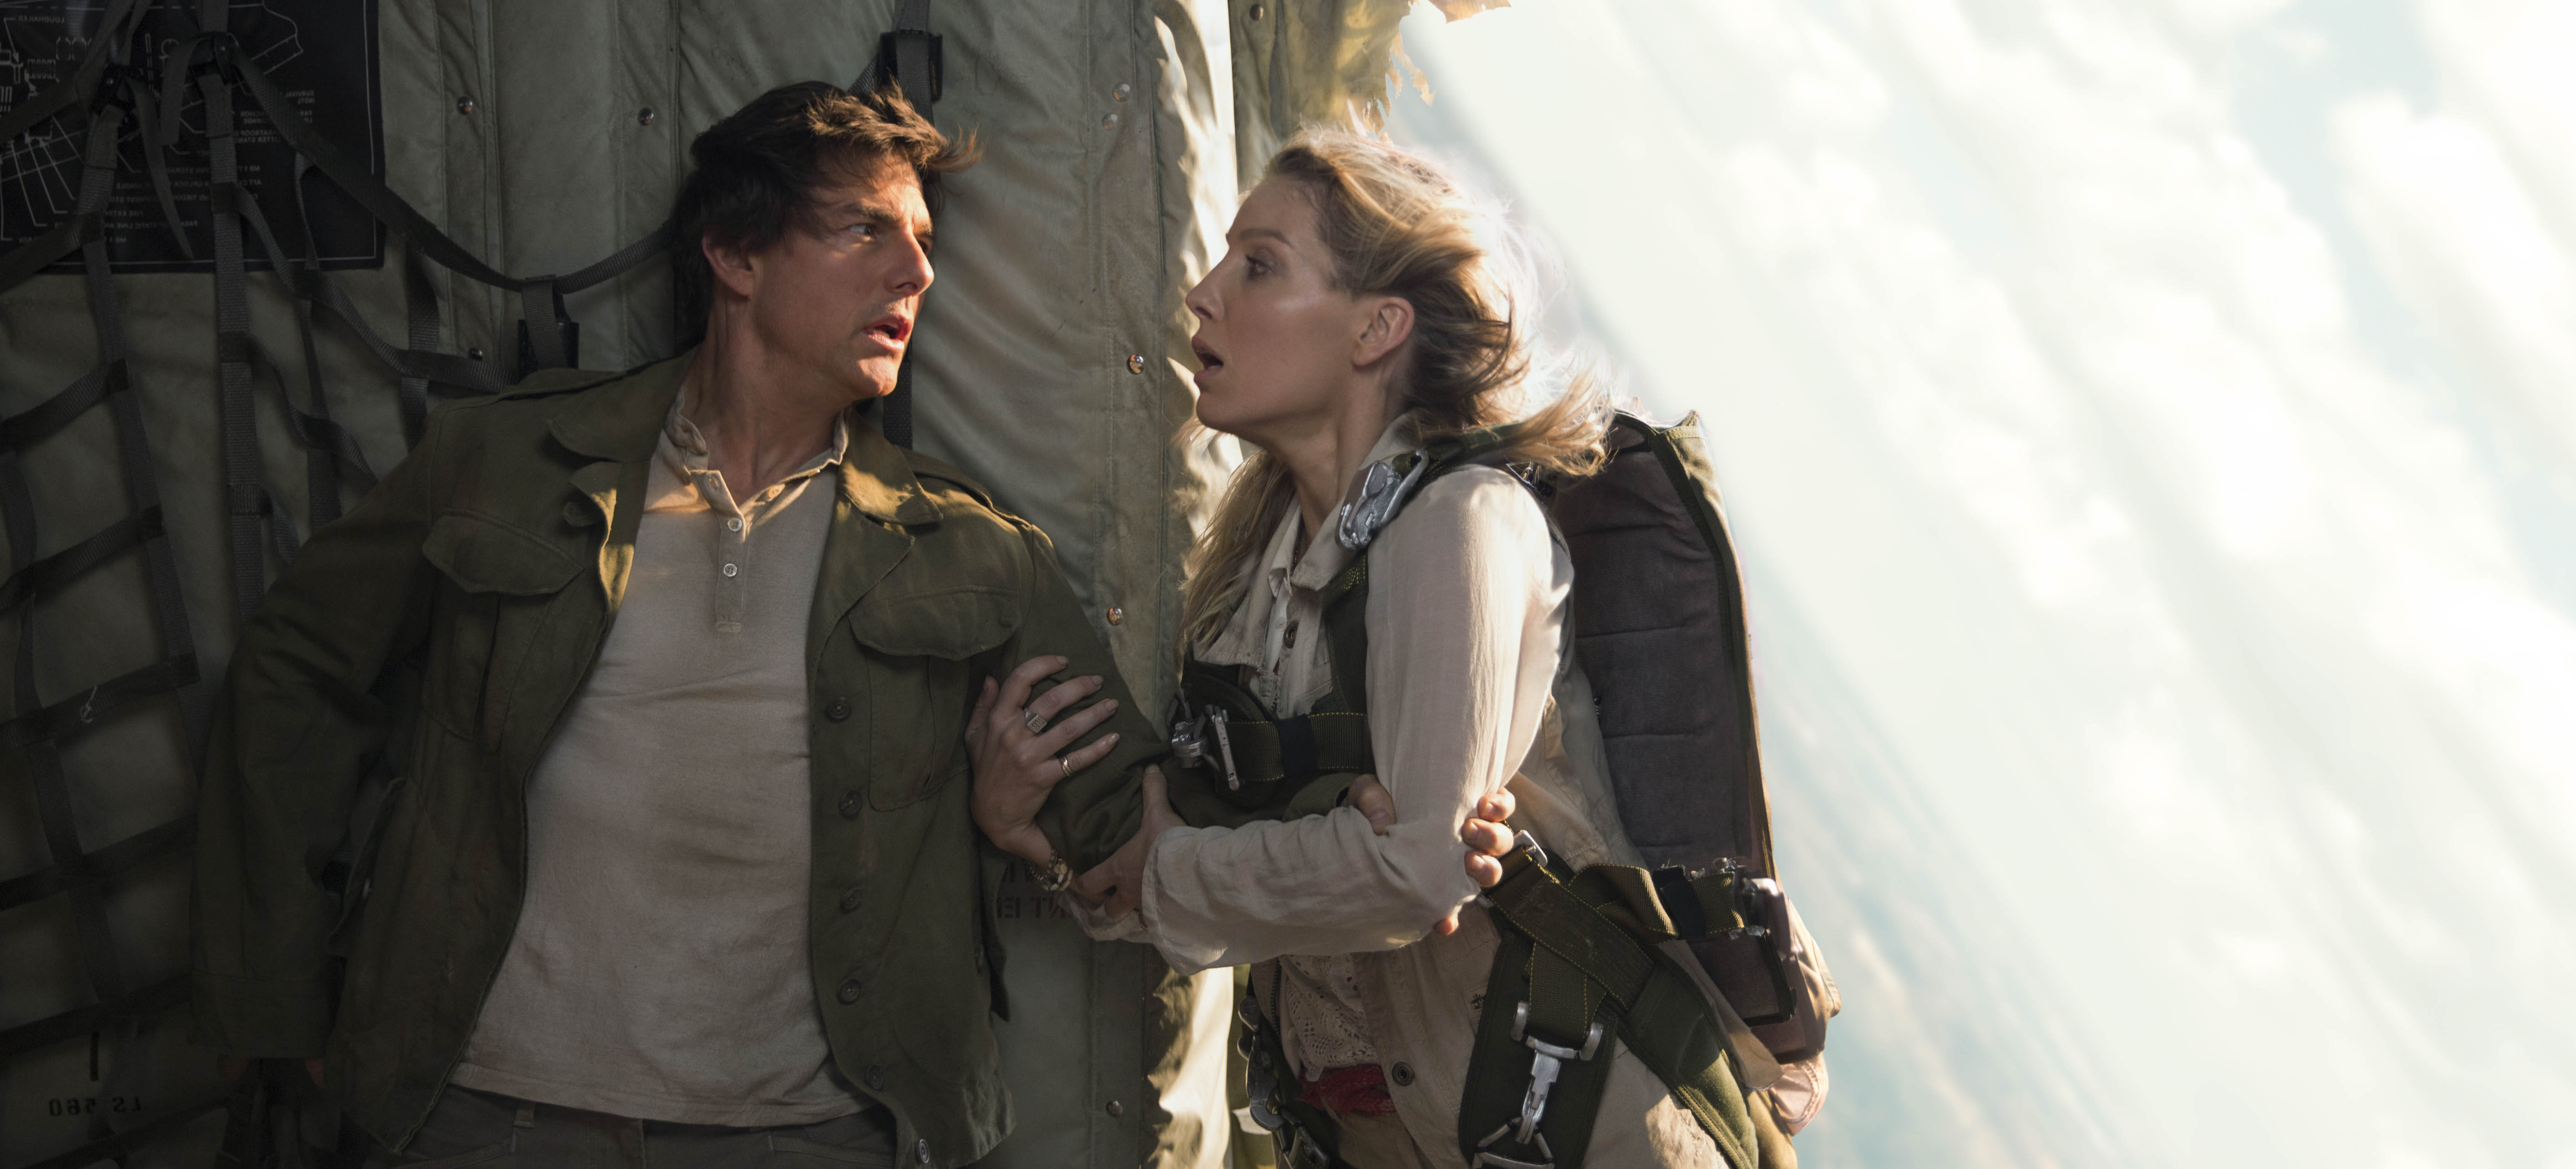 the mummy 2017 movie amazing hd wallpapers high resolution